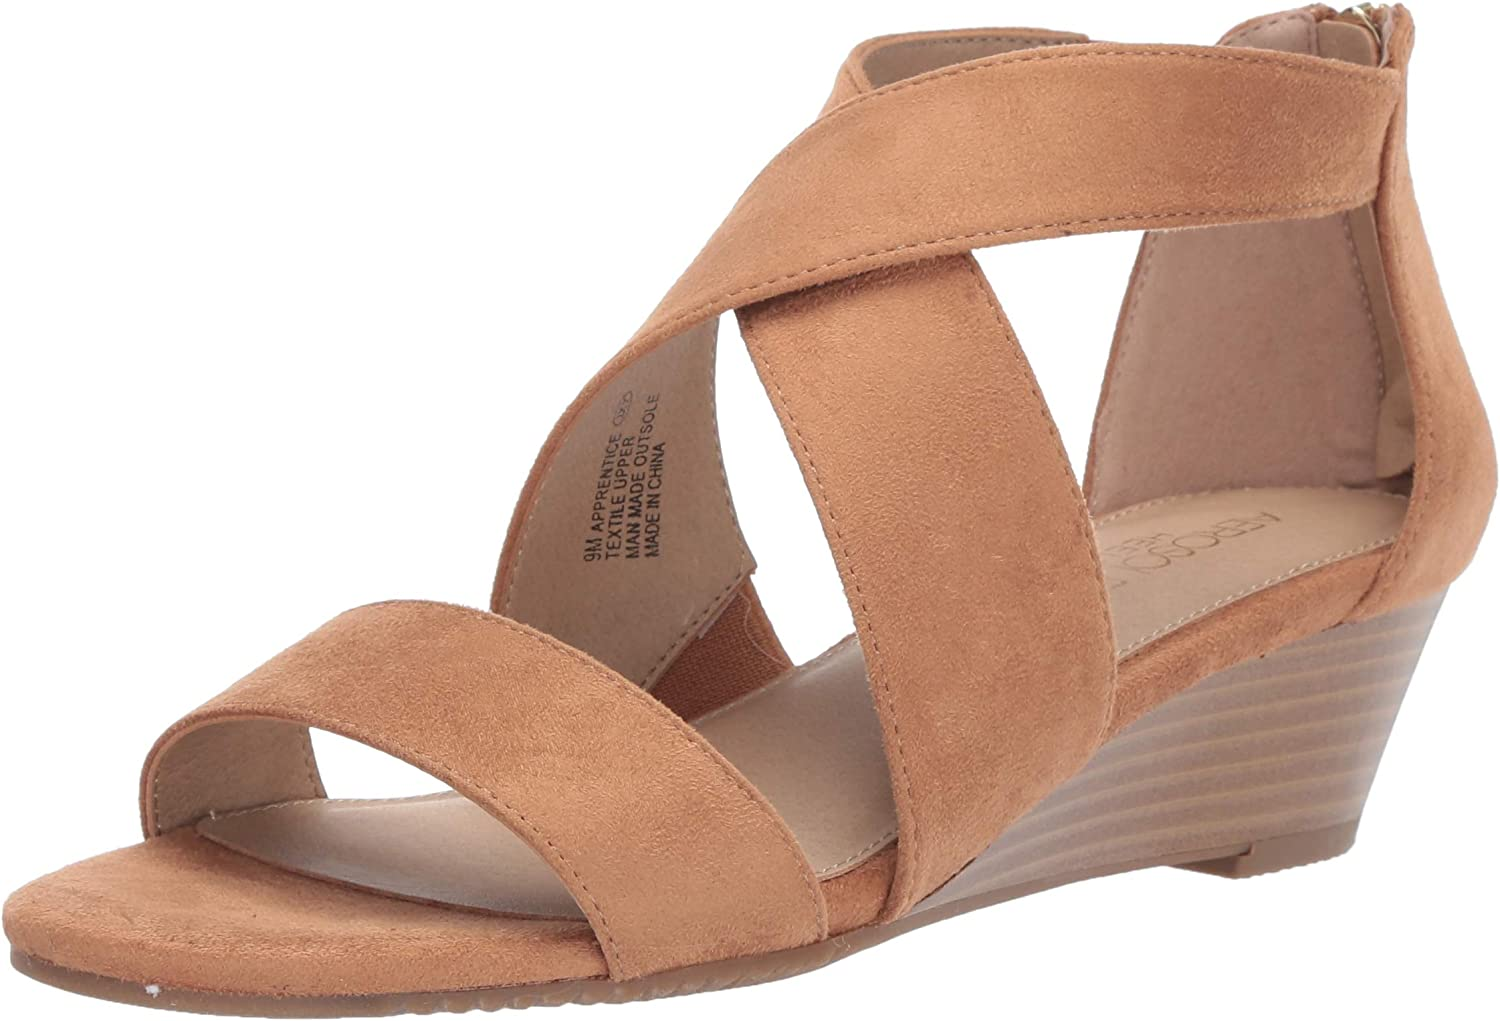 Aerosoles Womens Apprentice Wedge Sandal